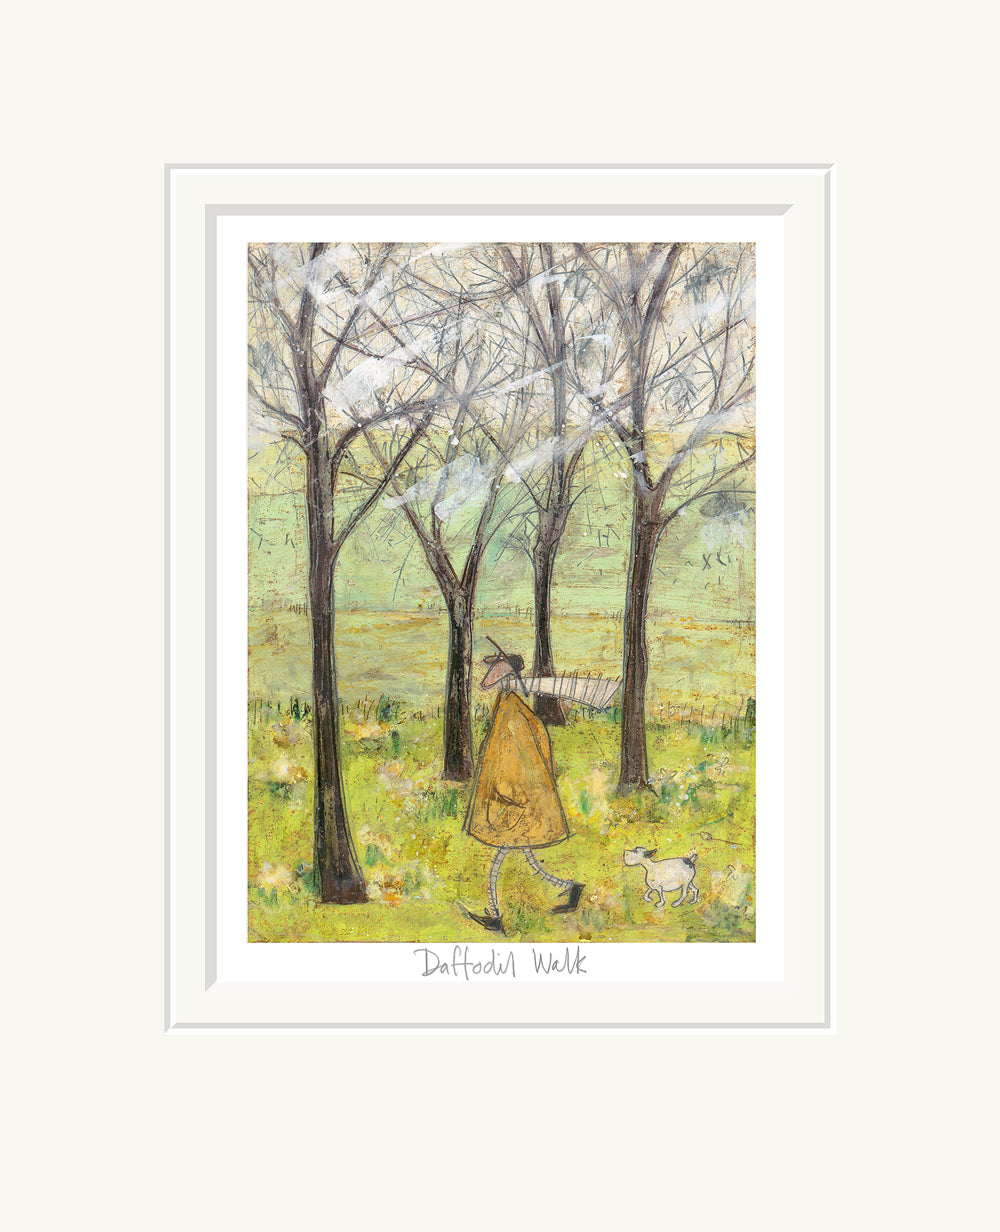 Daffodil Walk by Sam Toft